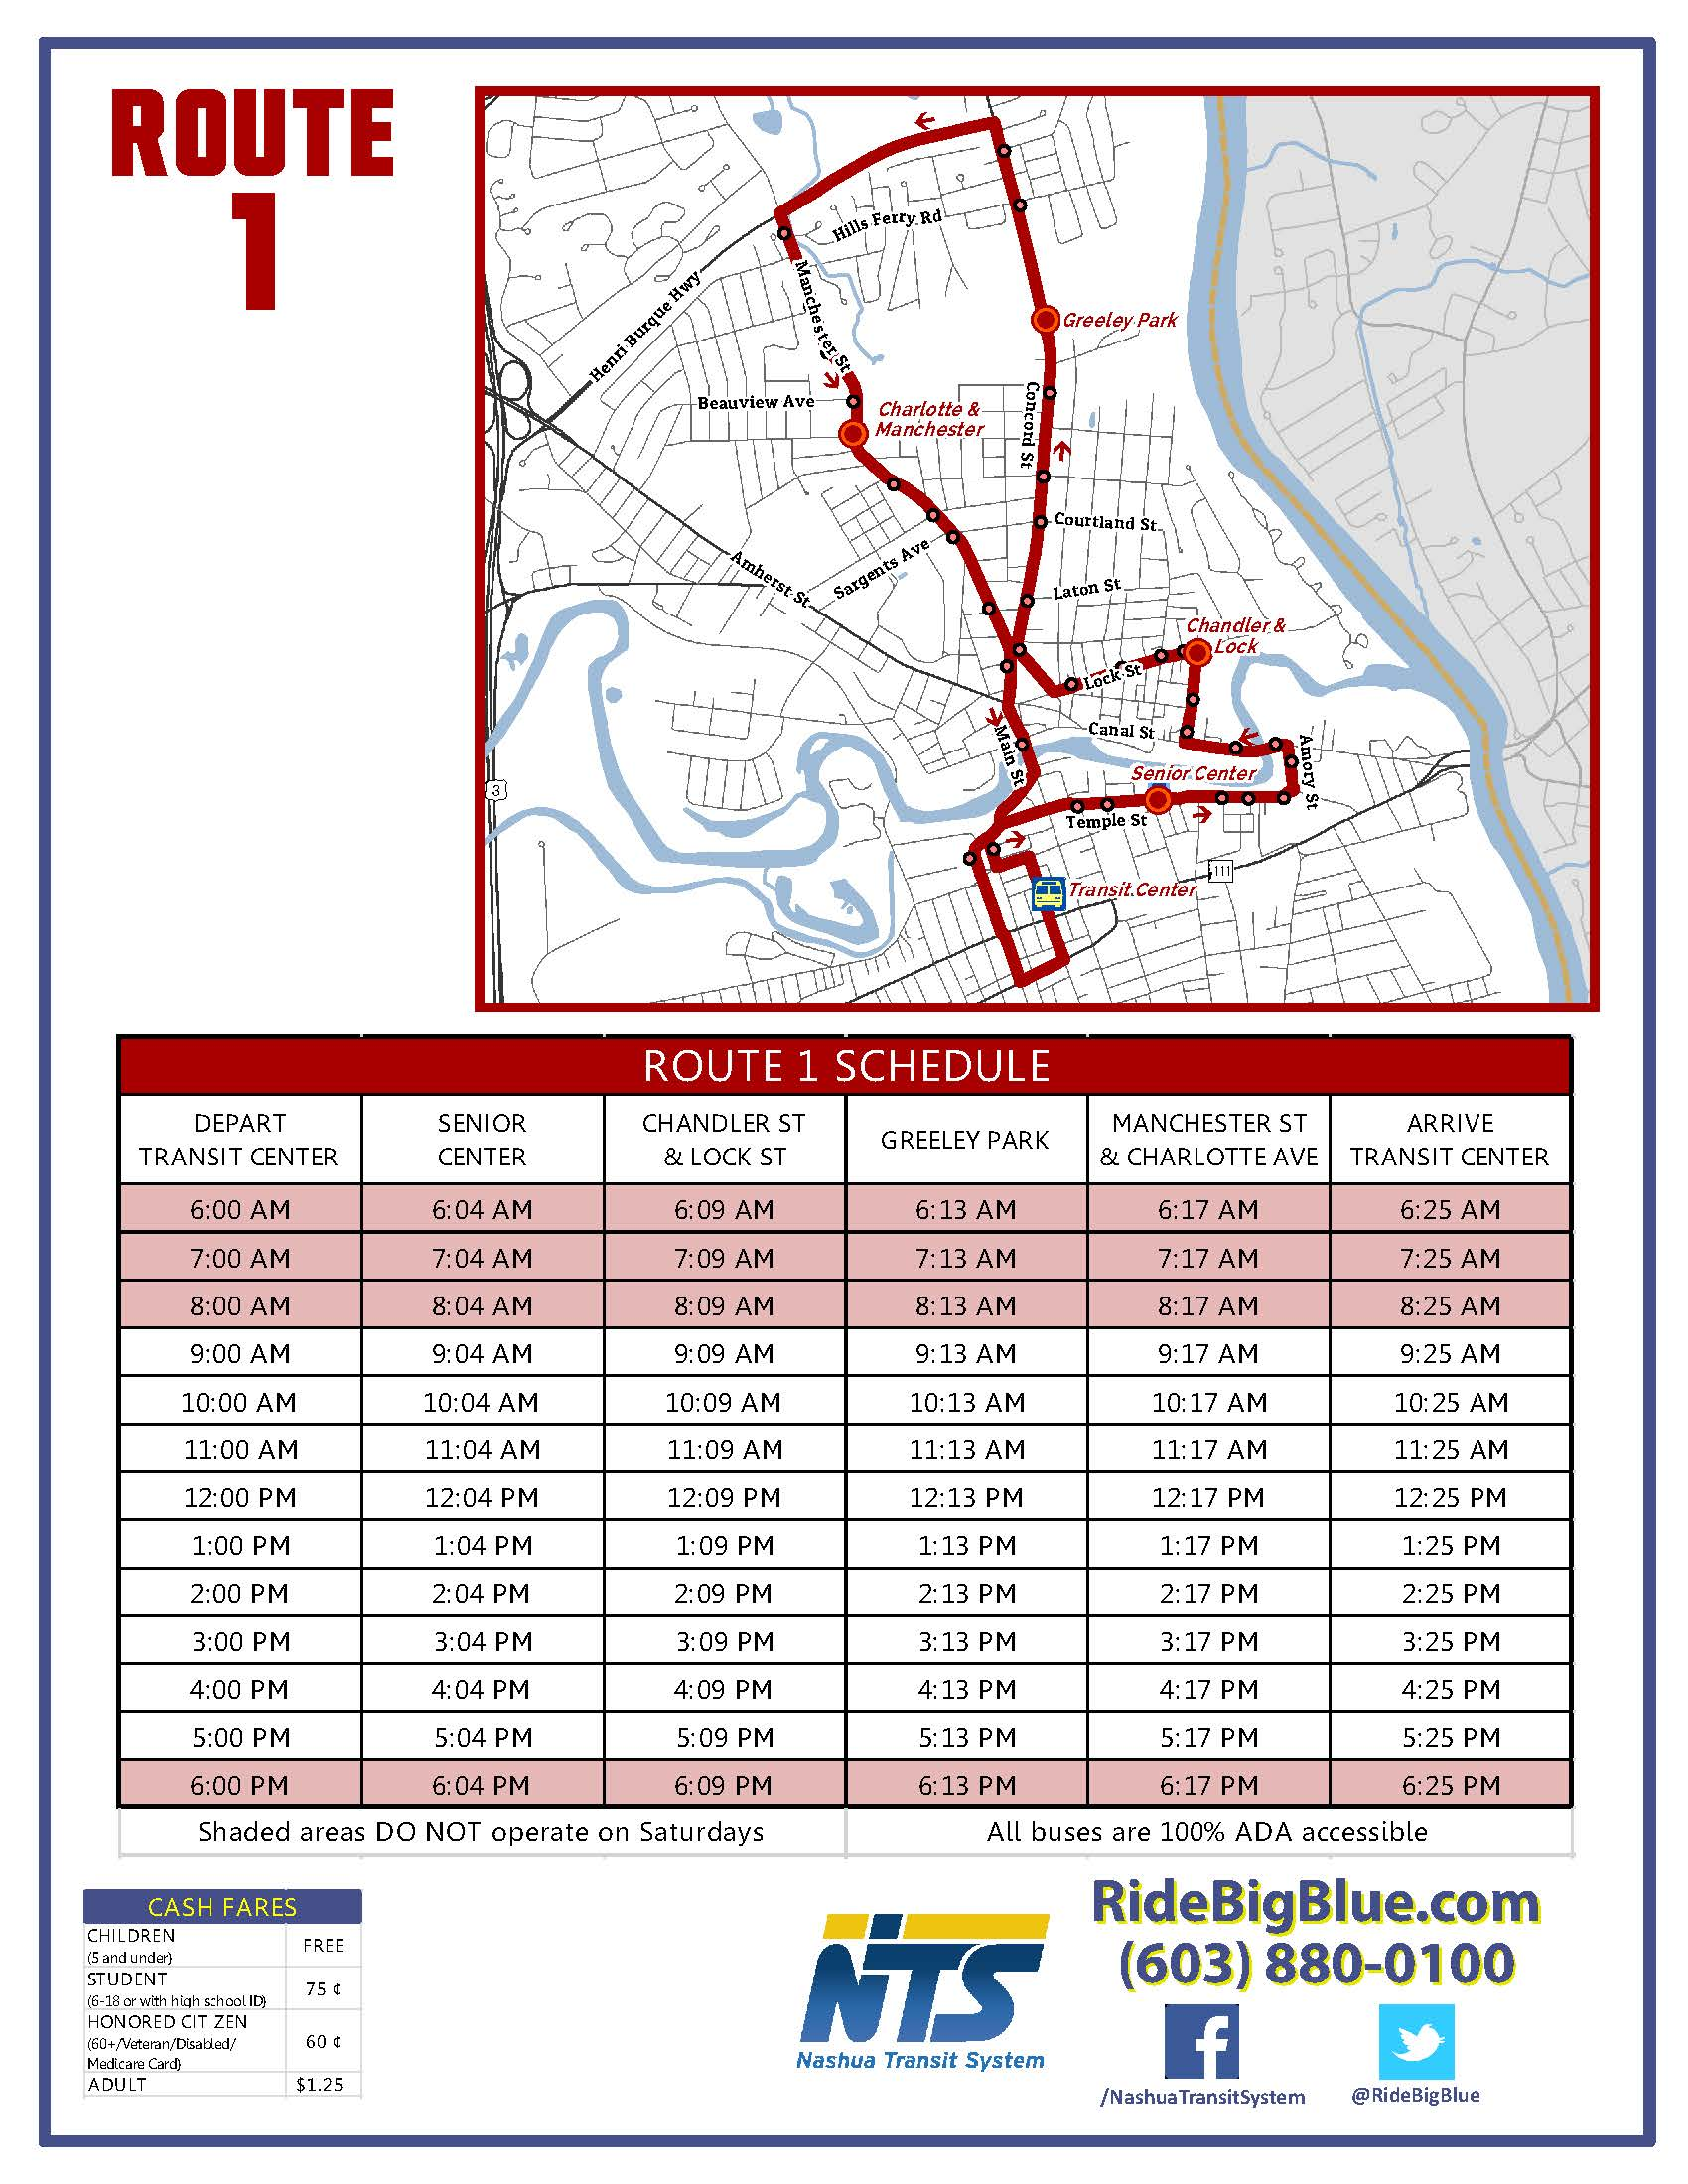 Route 1 Map & Schedule